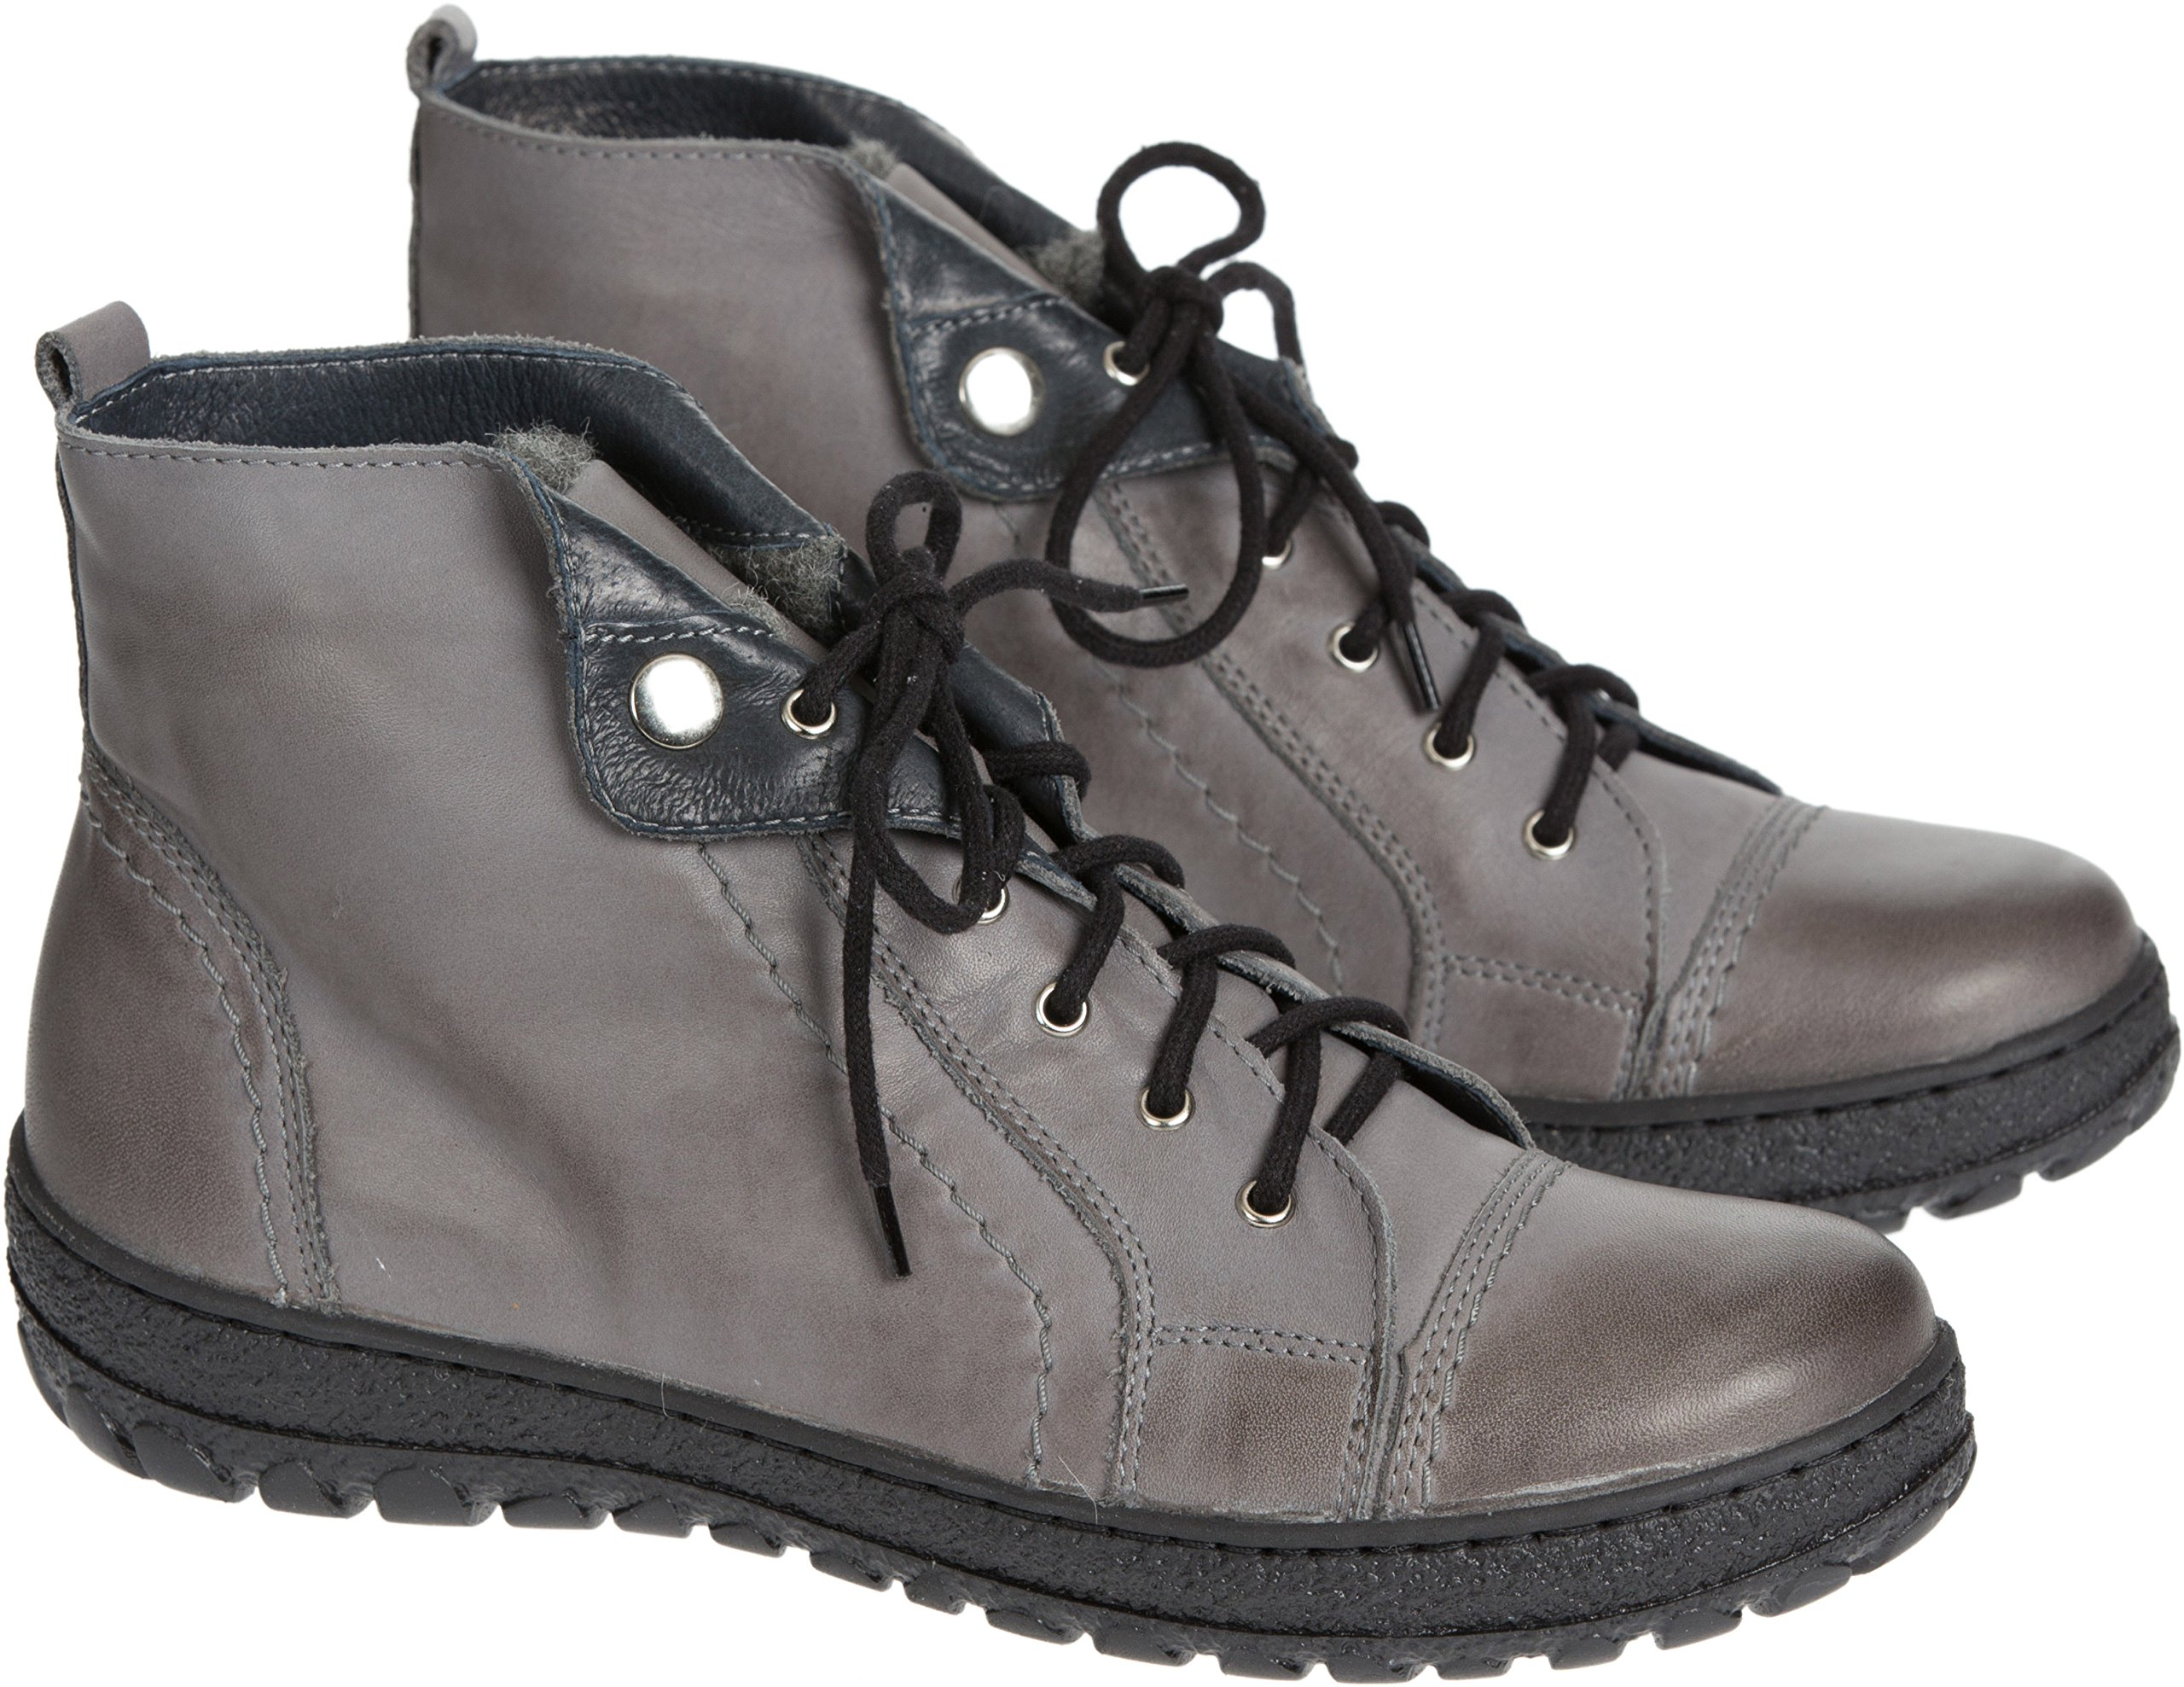 Women's Overland Tucker Wool-Lined Leather Ankle Boots, GREY, Size EU38